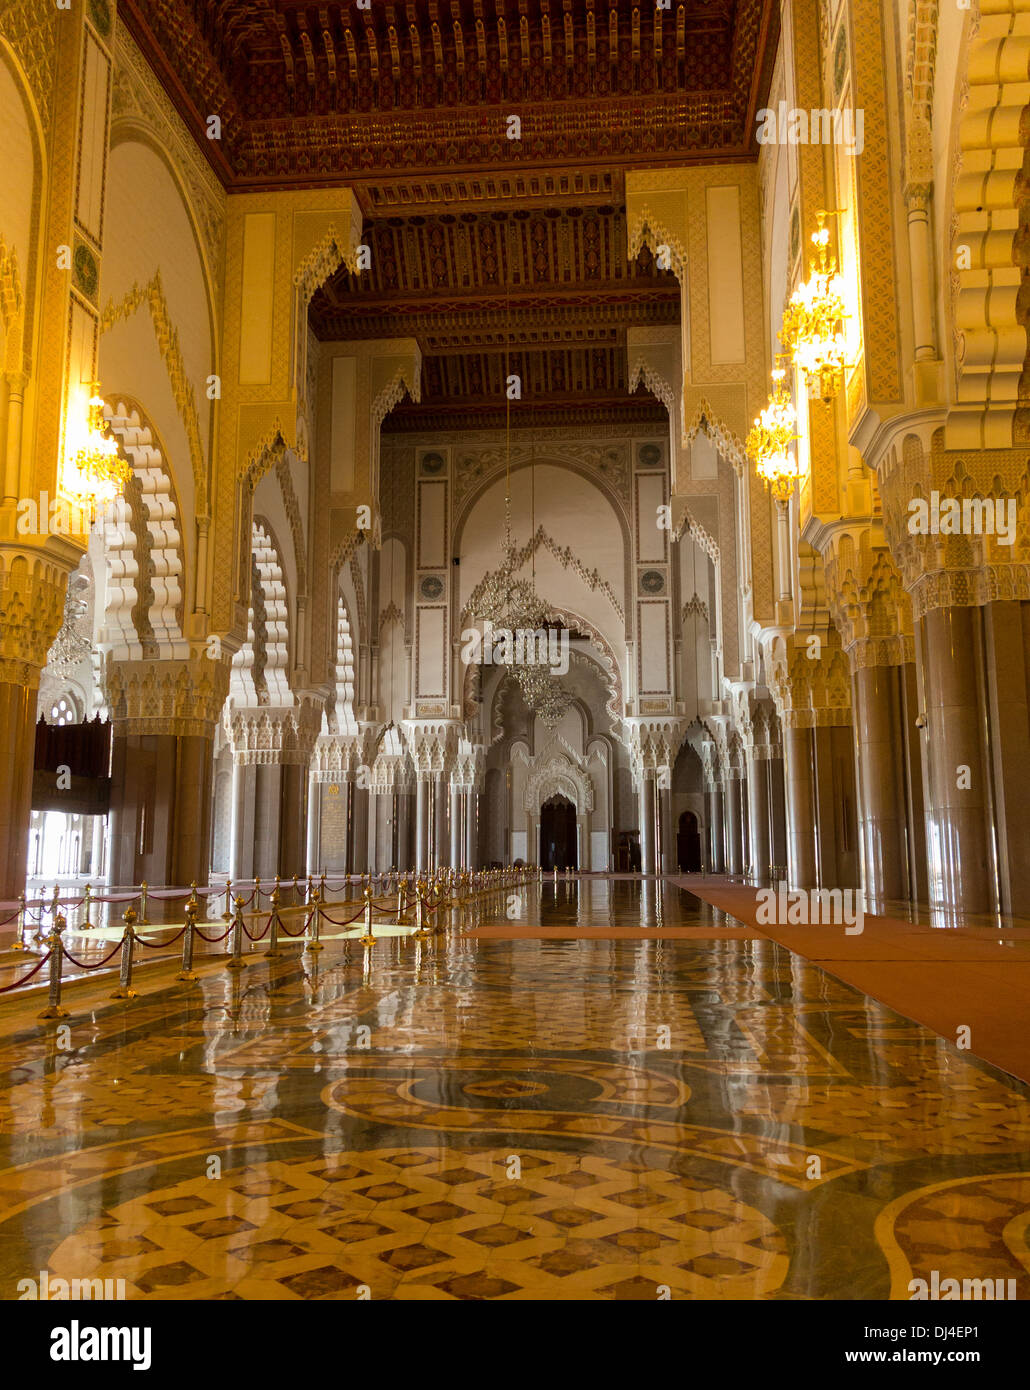 Interior of the hassan ii mosque or grande mosquee hassan for Mosquee hassan 2 architecture